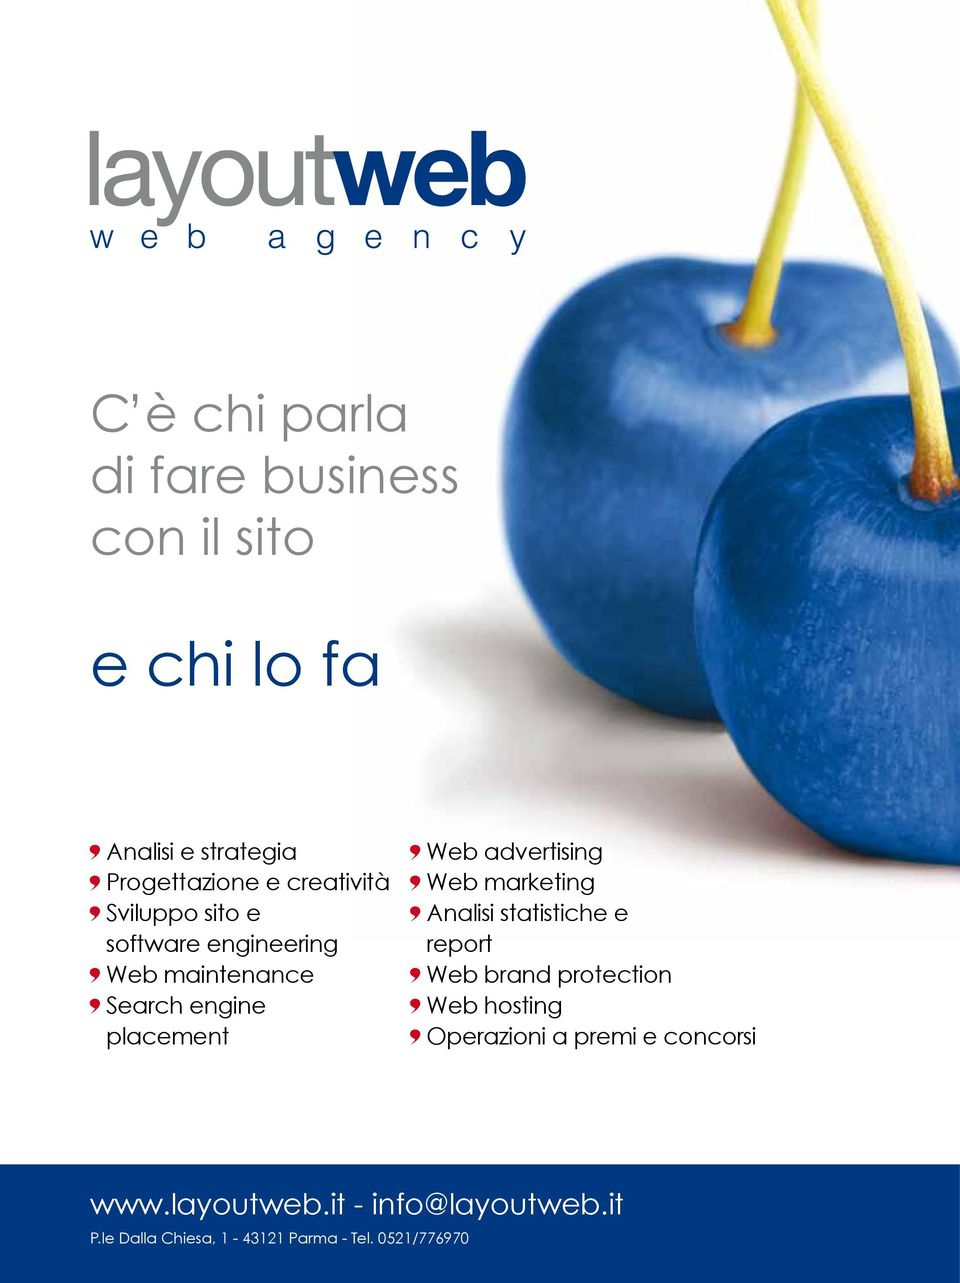 advertising Web marketing Analisi statistiche e report Web brand protection Web hosting